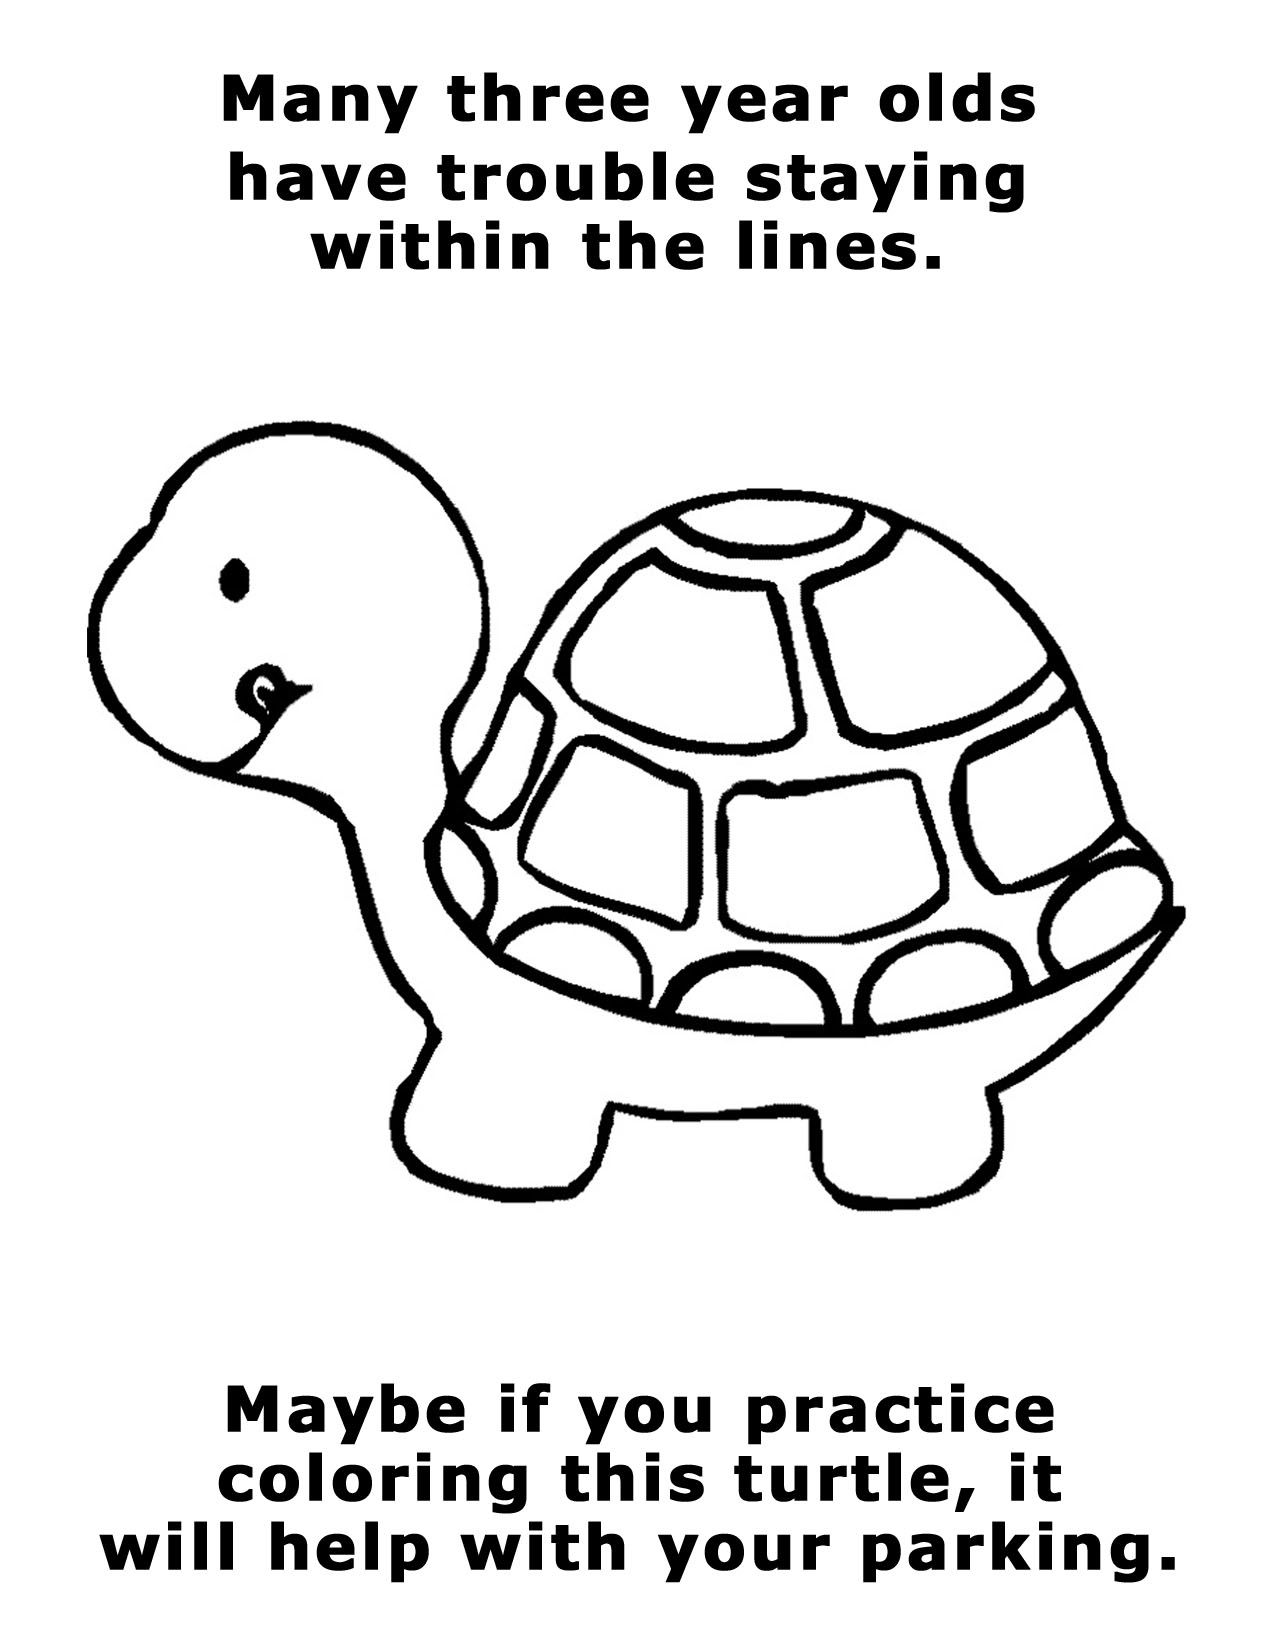 Many Three Year Olds Have Trouble Staying Within The Lines